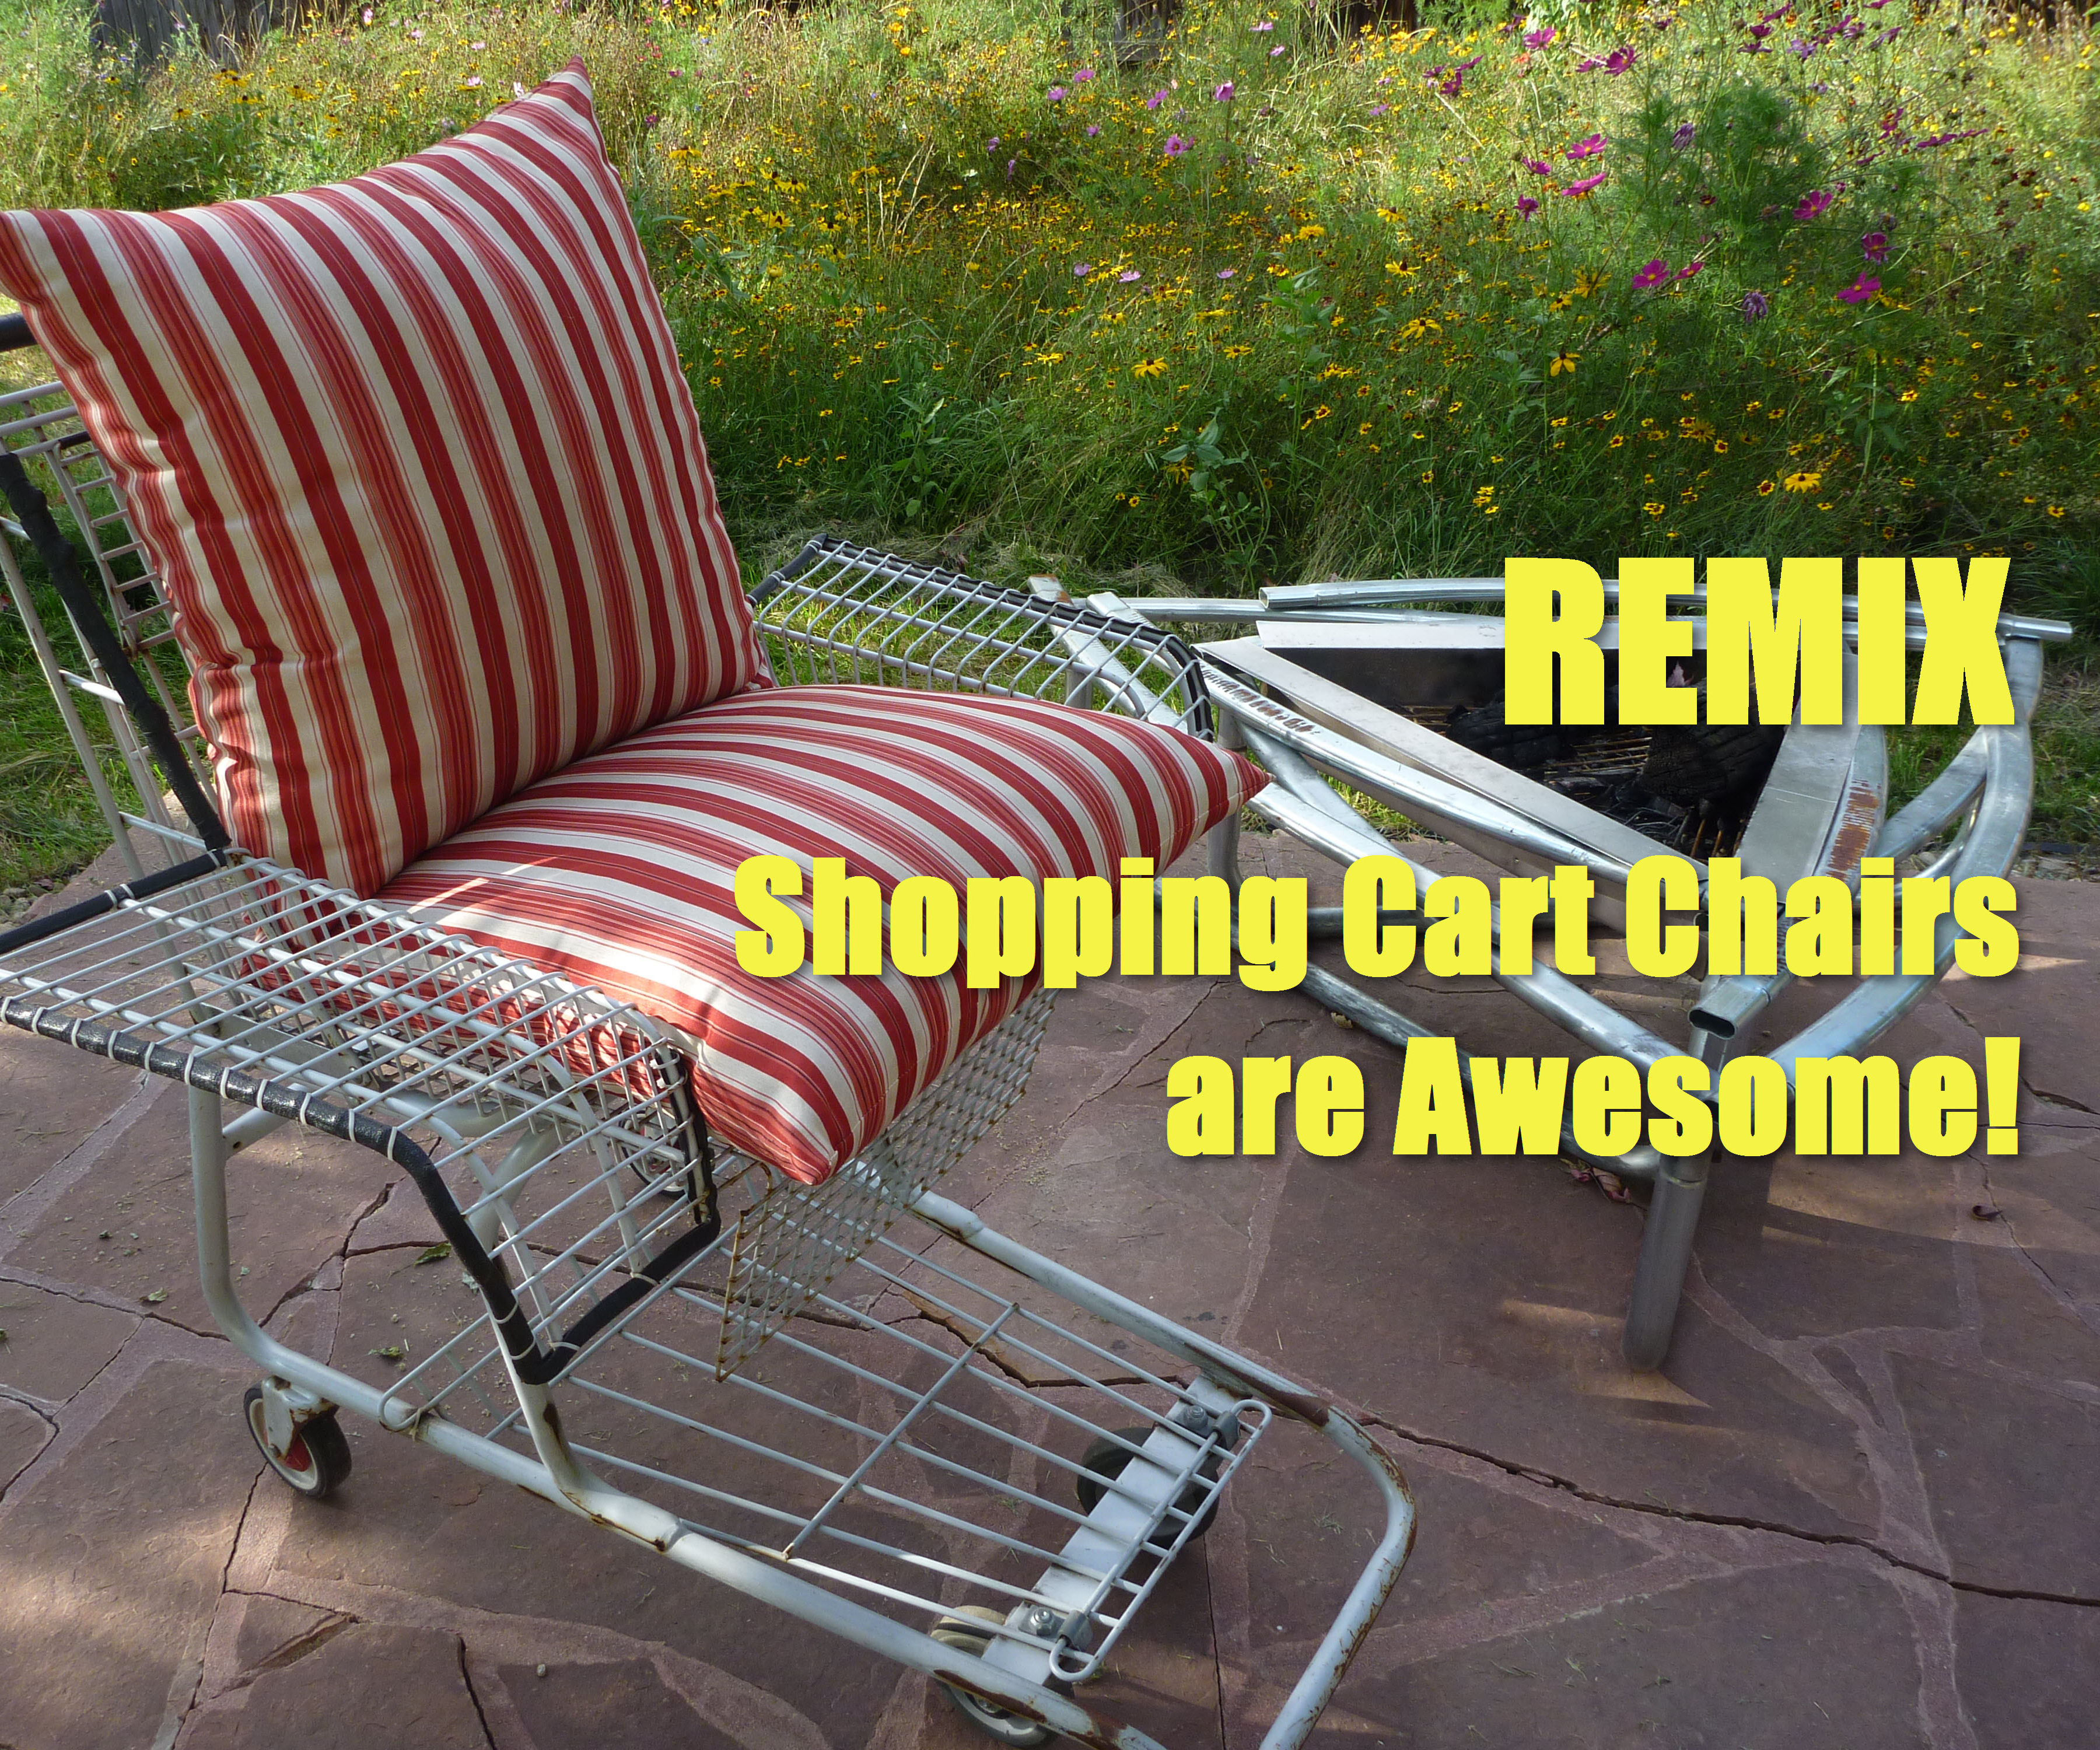 REMIX - Shopping Cart Chairs are Awesome!